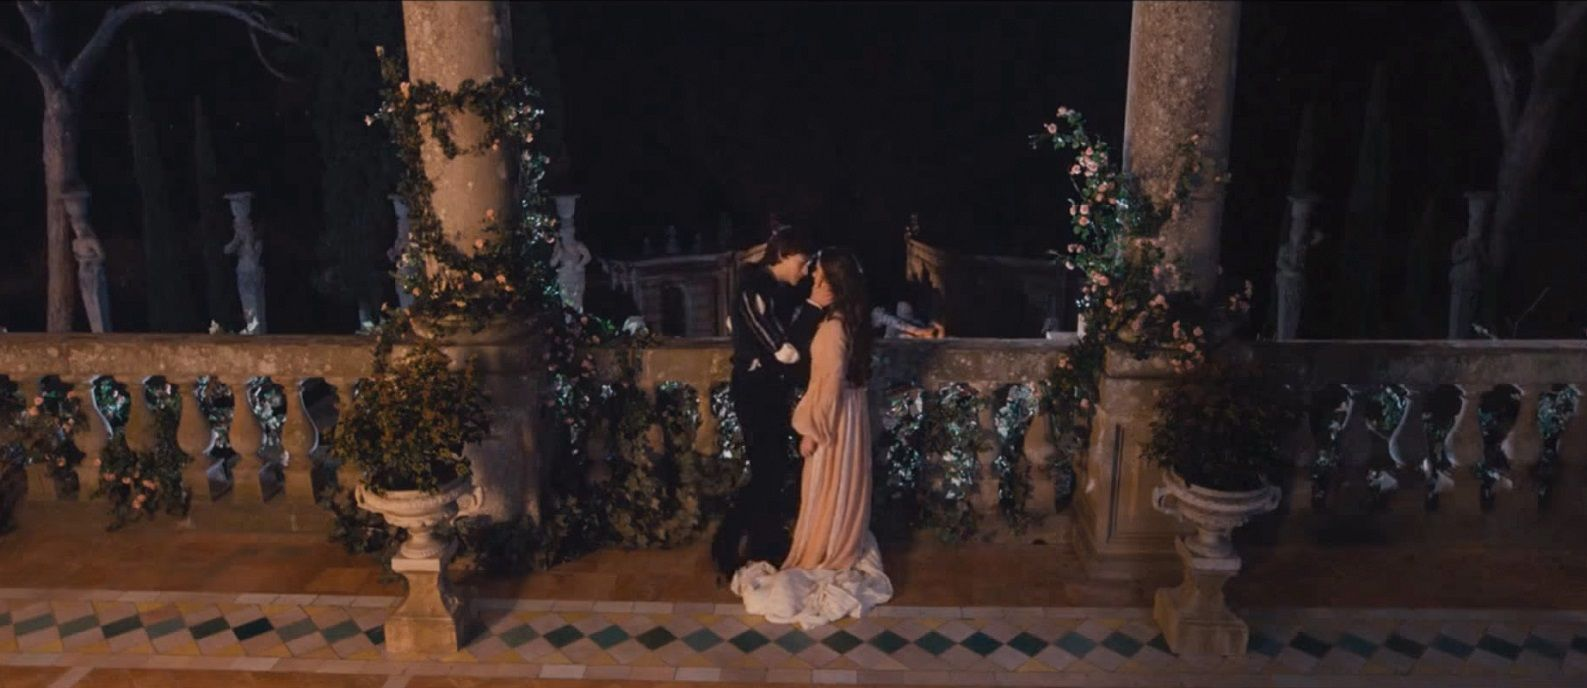 how to download romeo and juliet movie for free